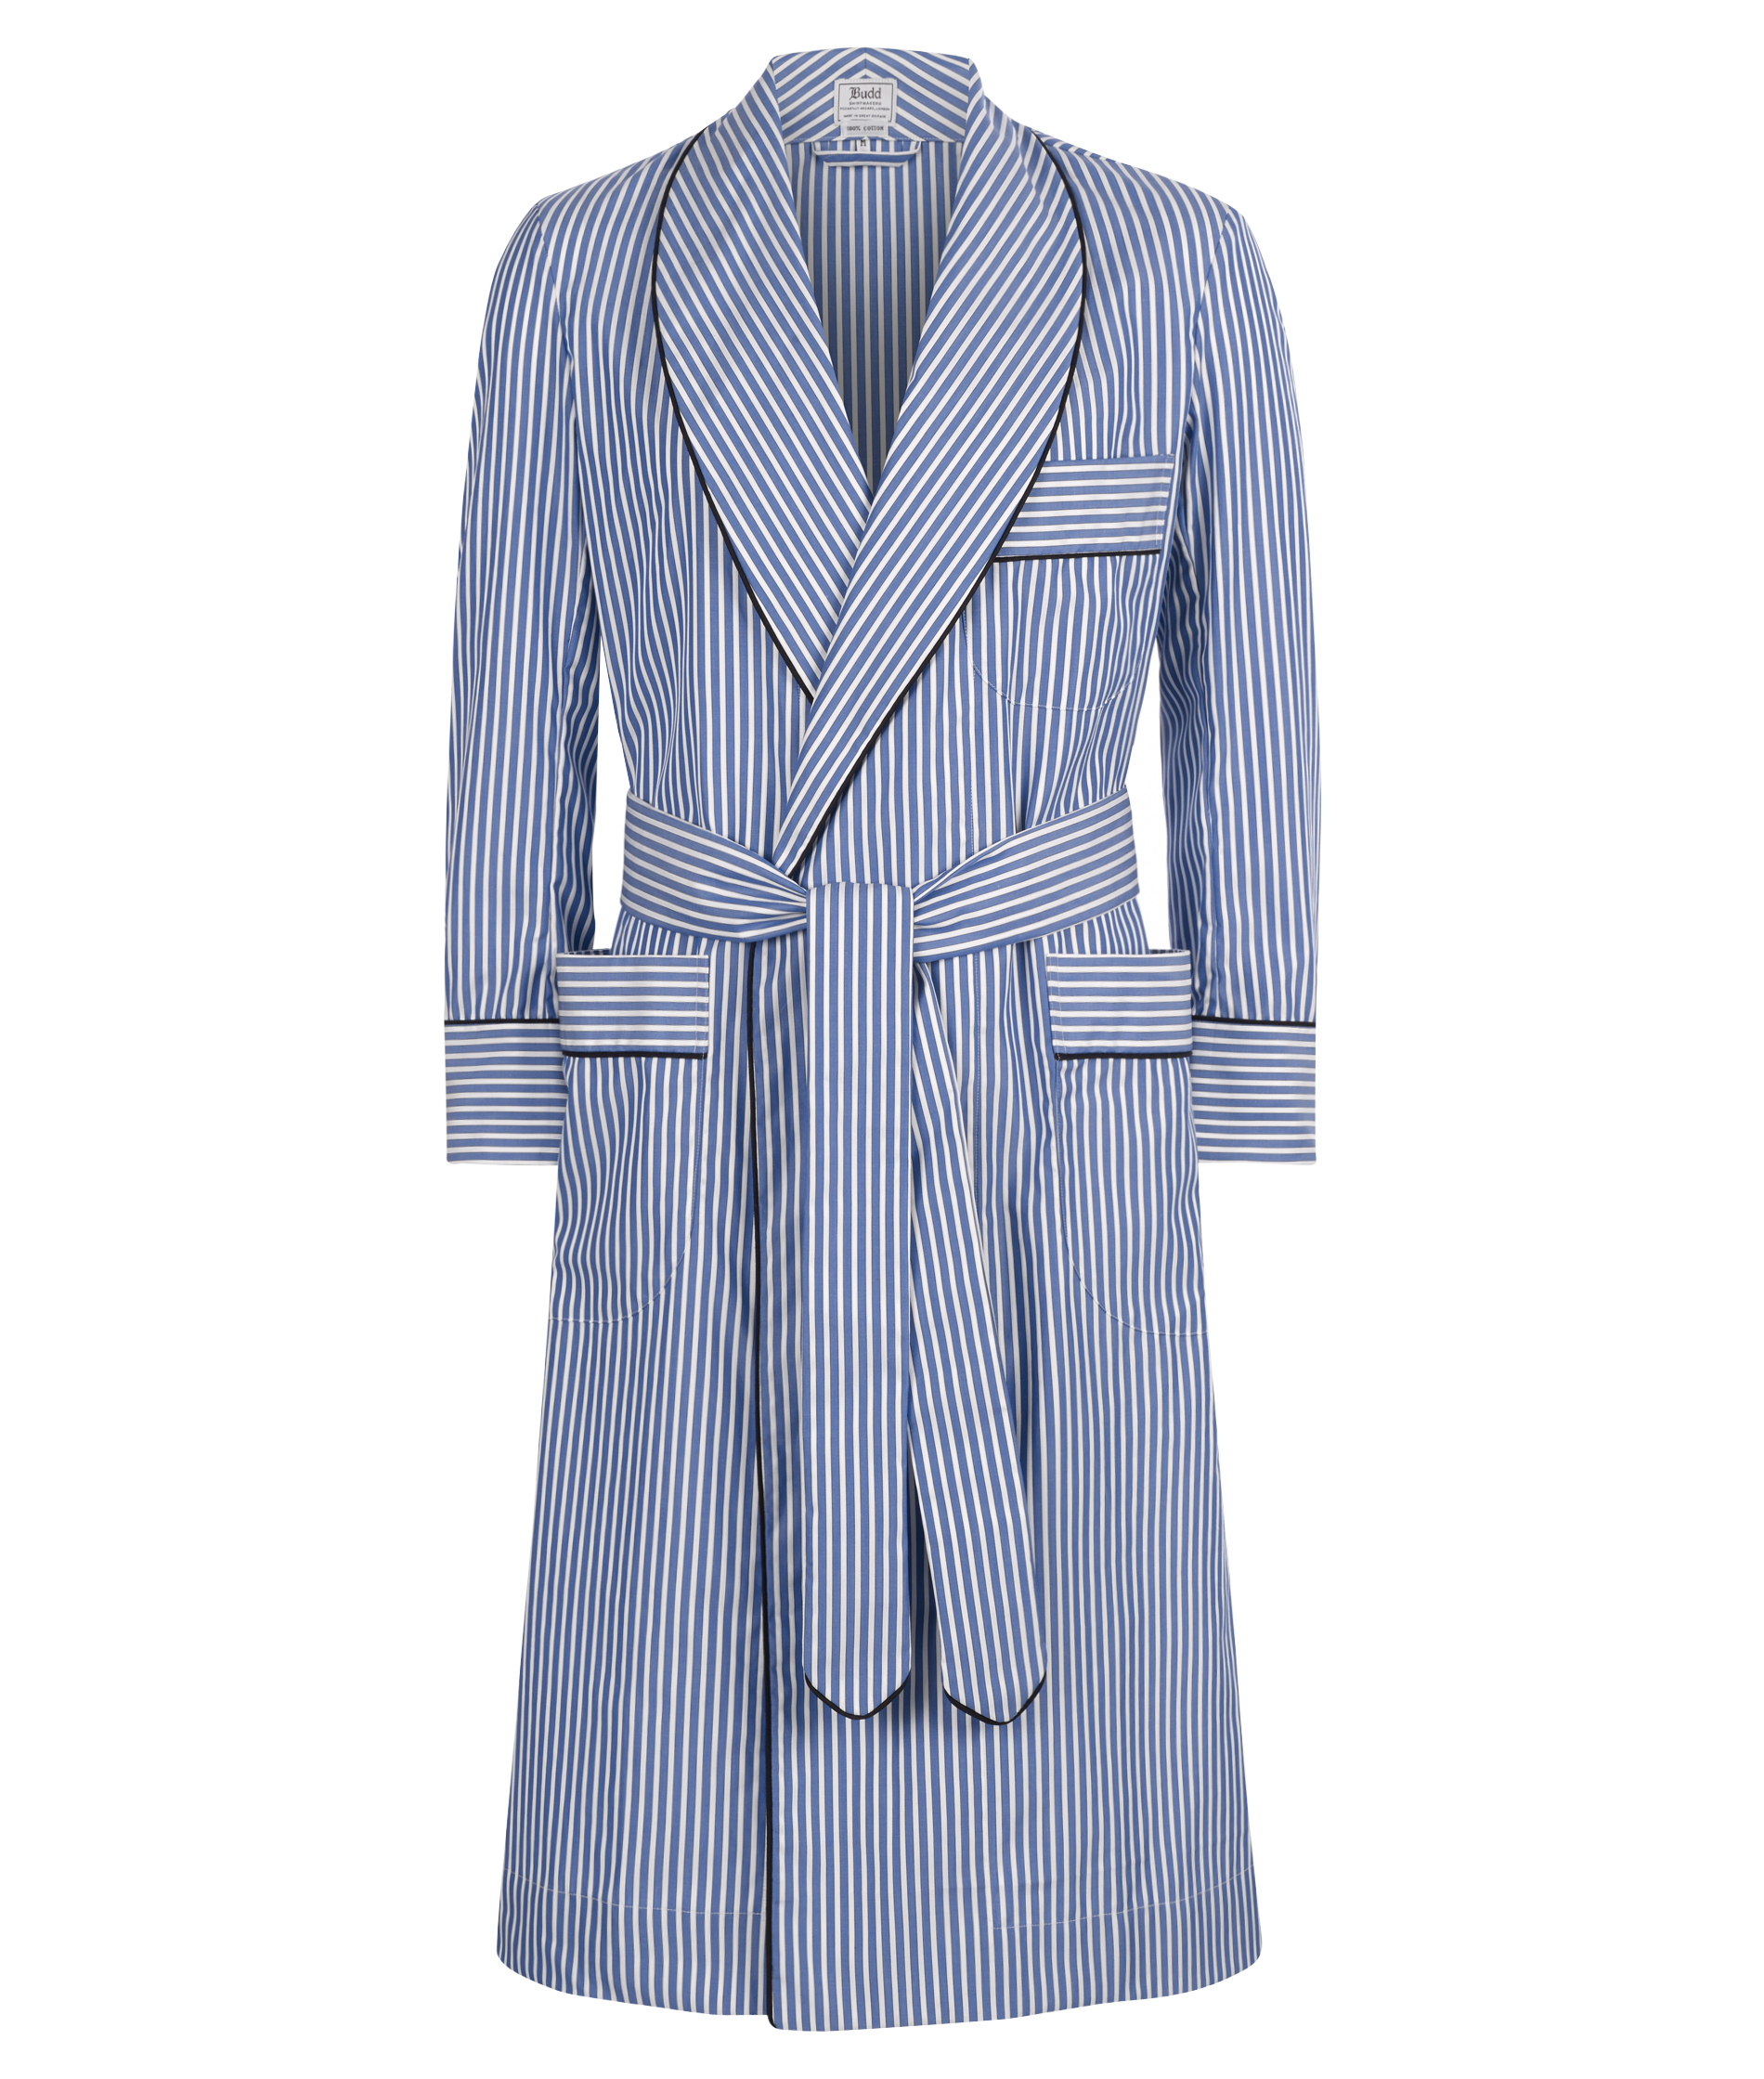 Exclusive Budd Stripe Cotton Dressing Gown in Edwardian Blue